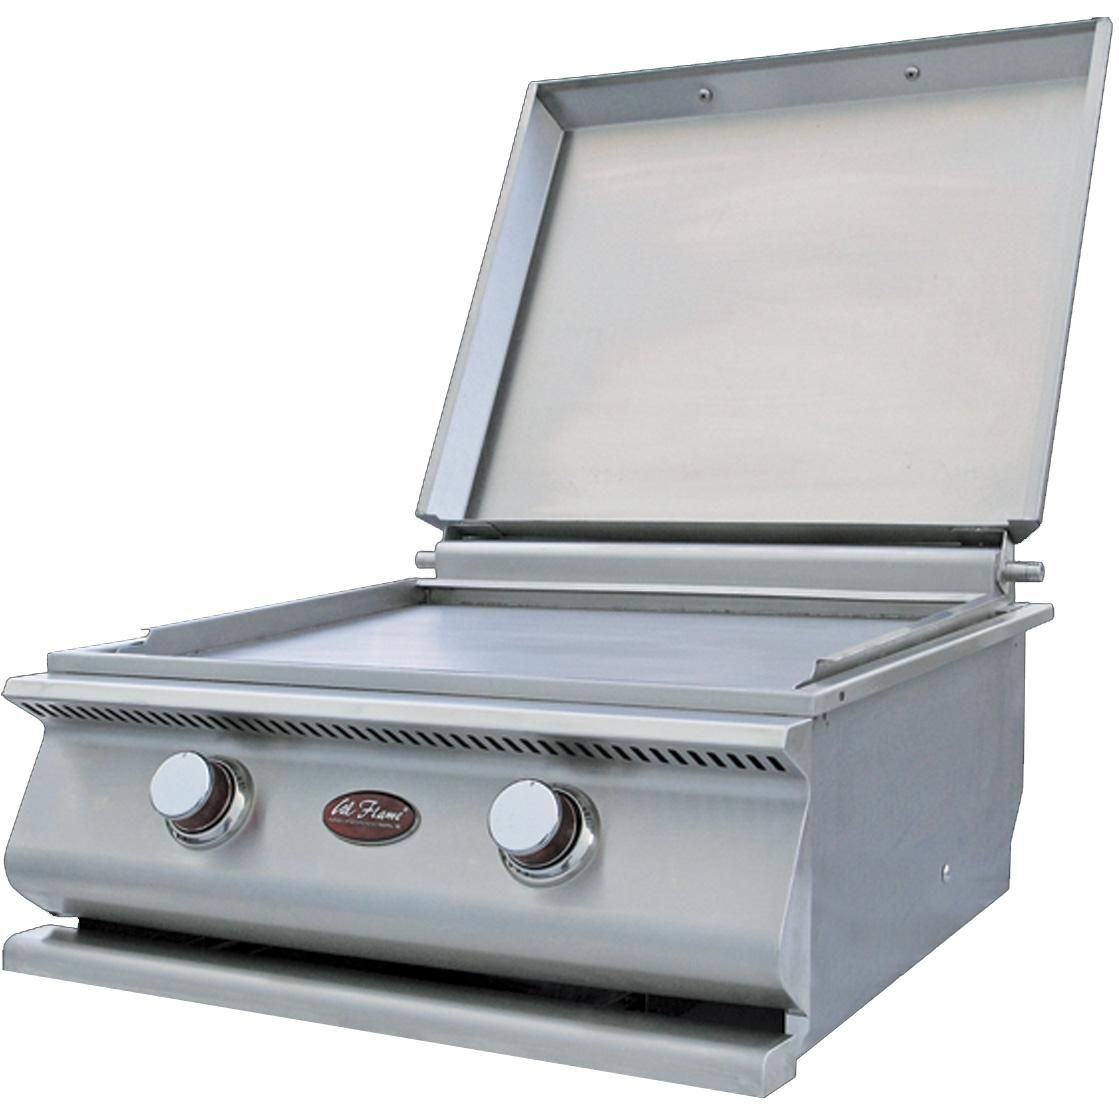 Griddle Built In Island Griddles Bbq Guys Cal Flame Hibachi Grill Outdoor Kitchen Design